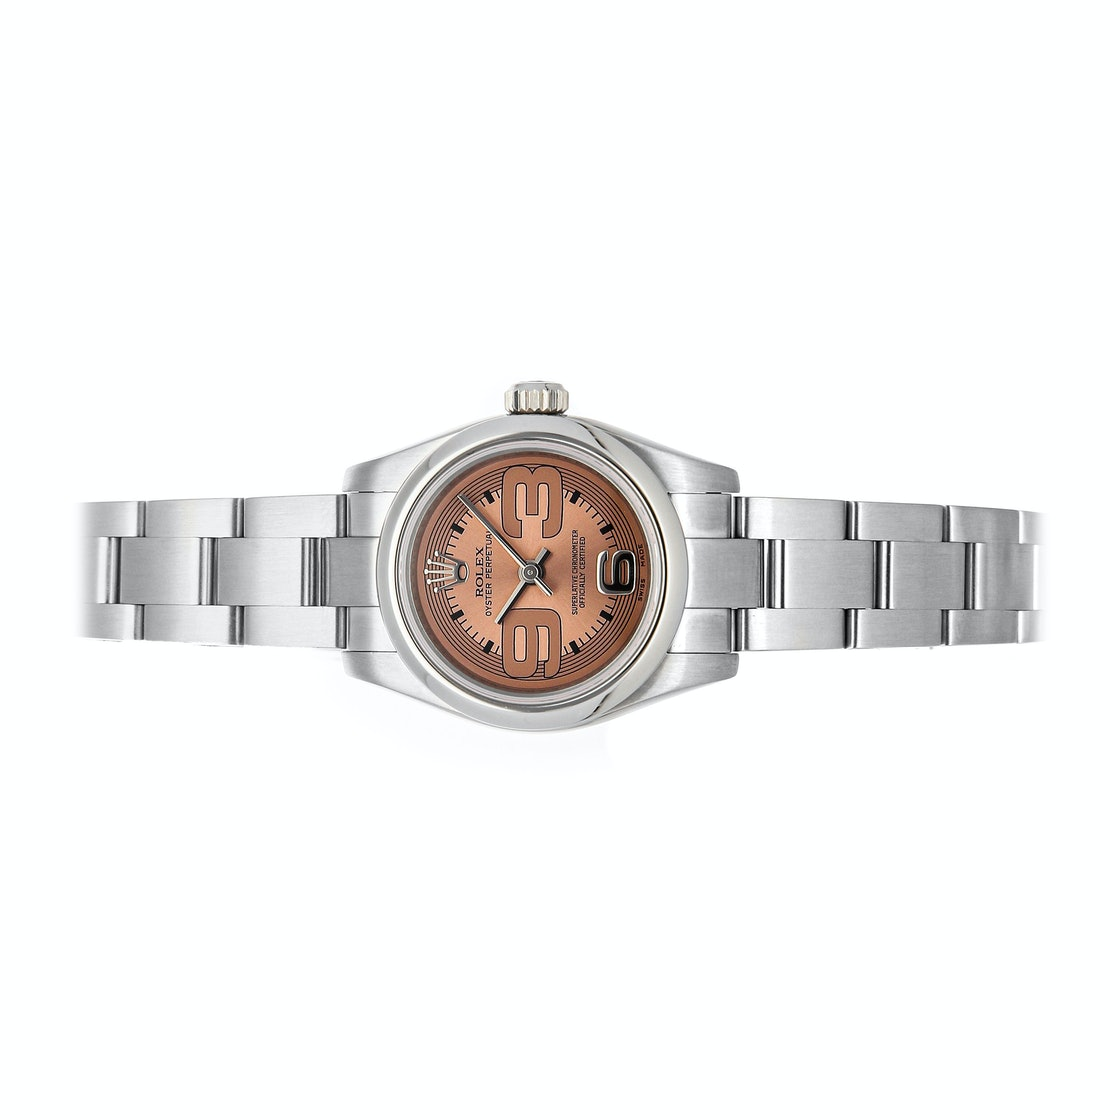 Rolex Oyster Perpetual 176200